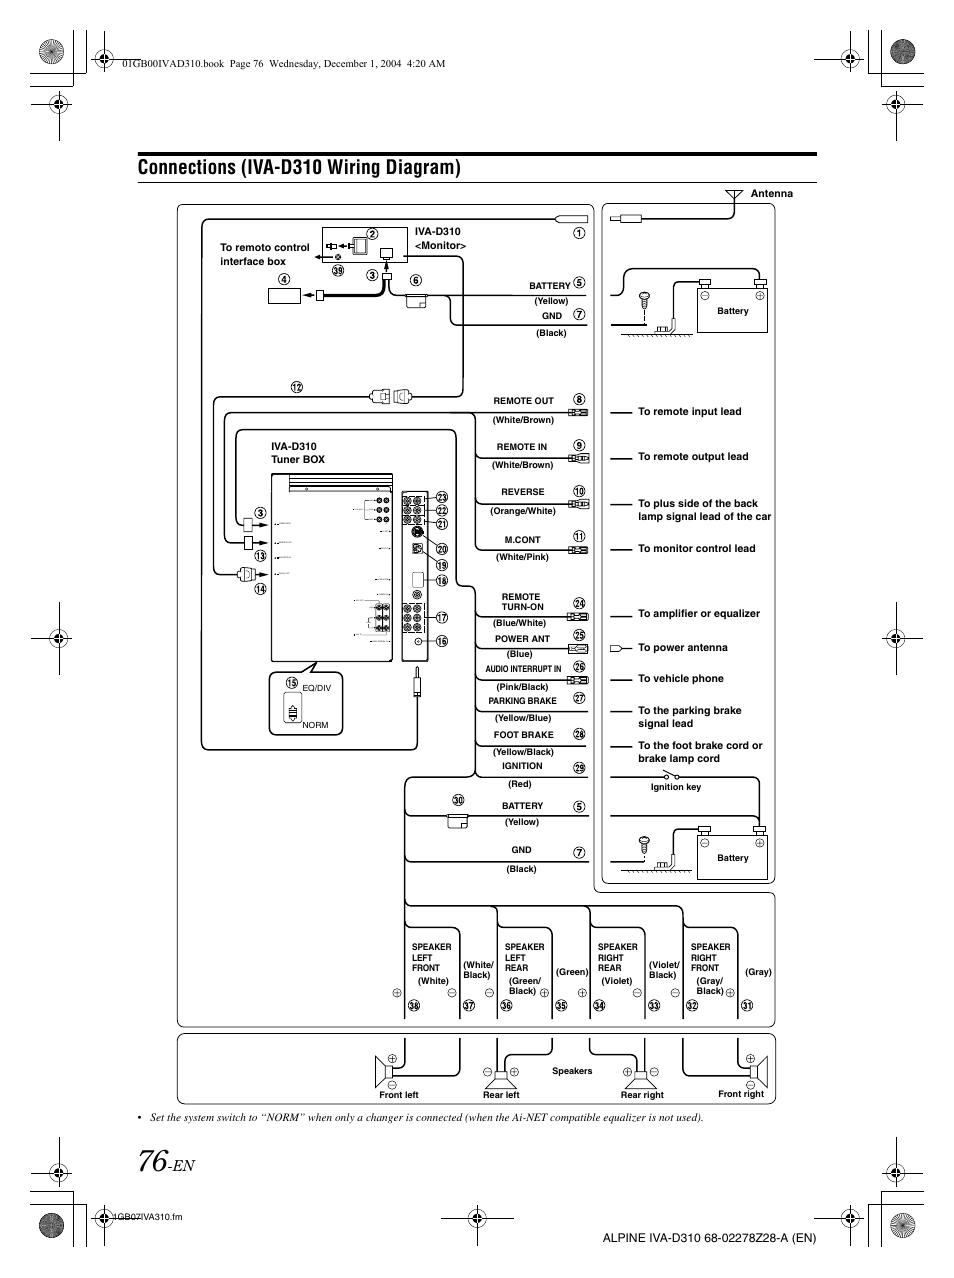 alpine iva d310 page78?resize\\\\\\\\\\\\\\\=665%2C891 wiring diagram 2004 sun deck gandul 45 77 79 119  at edmiracle.co